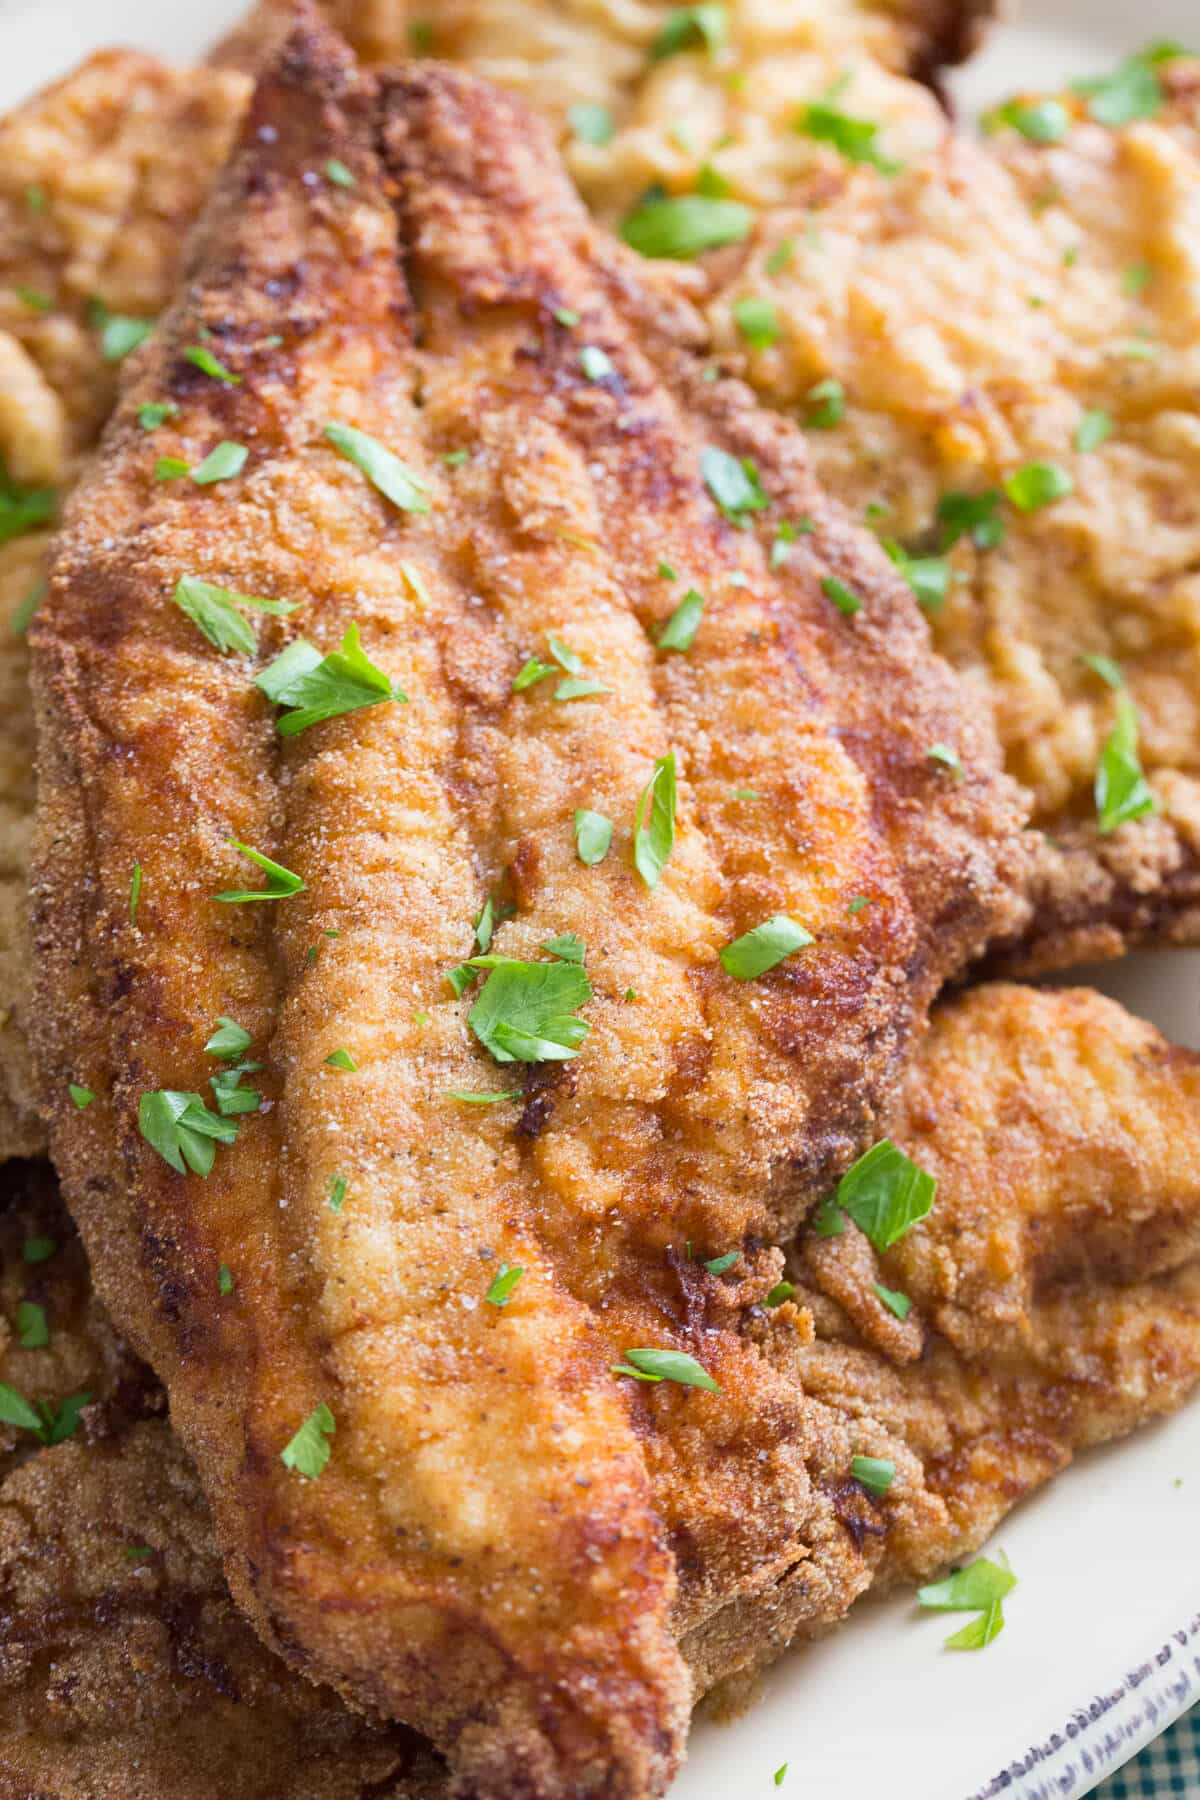 This is fried catfish at it's best! It is crisp on the outside and flaky on the inside, just as it should be!